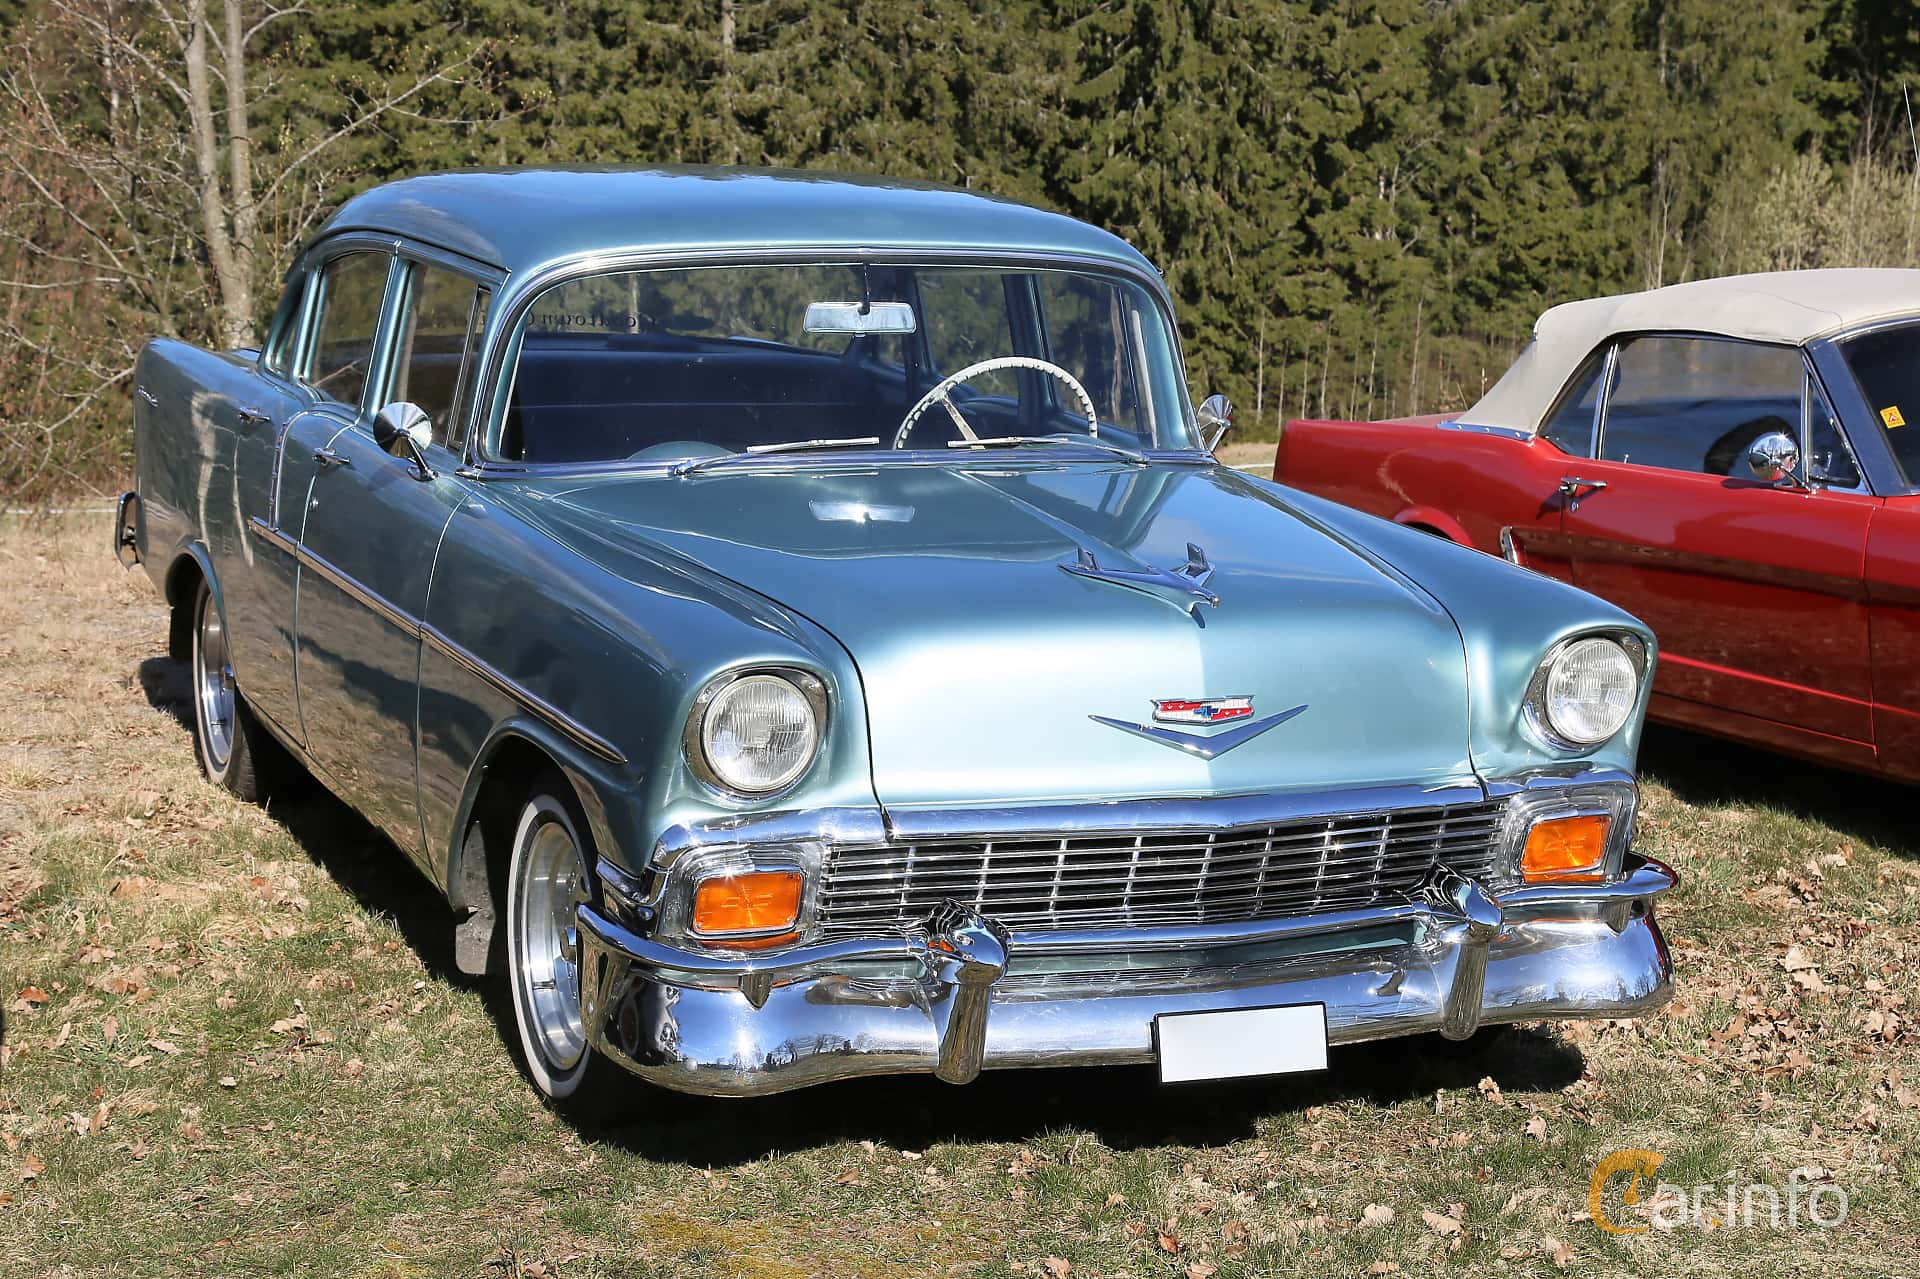 Chevrolet 150 4-door Sedan 4.3 V8 Manual, 165hp, 1956 at Uddevalla Veteranbilsmarknad Backamo, Ljungsk 2019